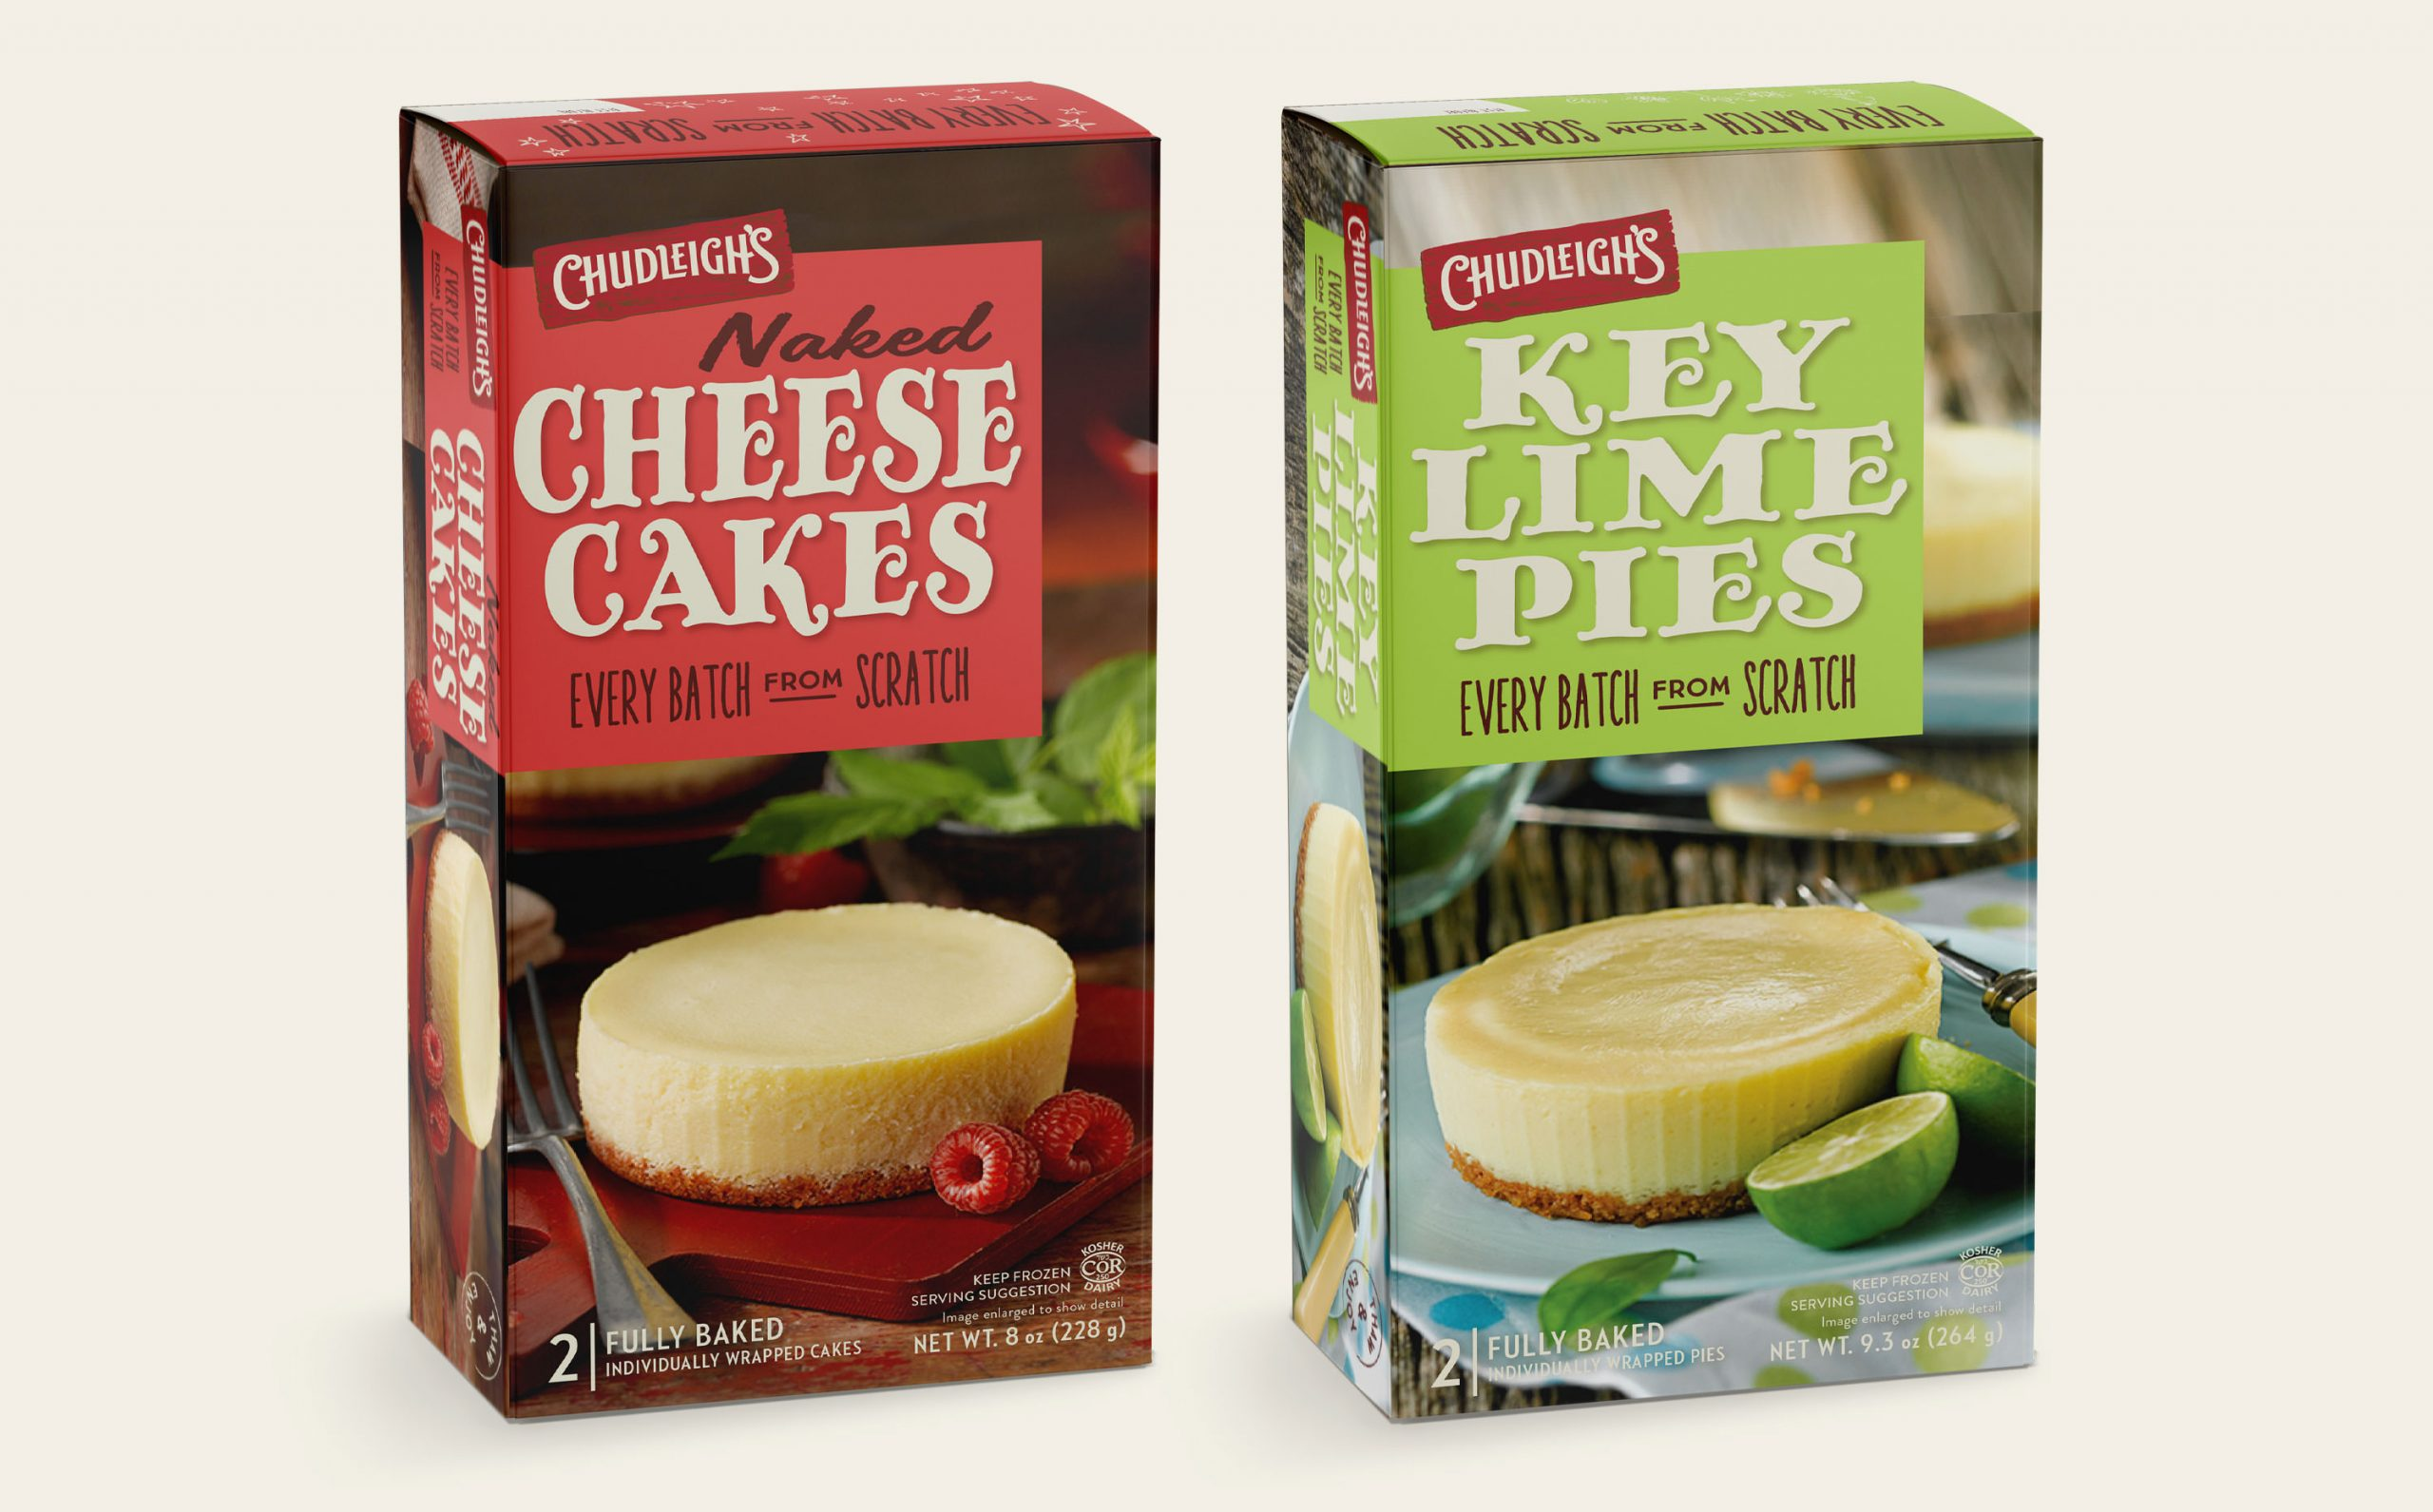 Chad Roberts Design Ltd. Chudleigh's Cheesecakes Chudleigh's Key Lime Pies Package Design